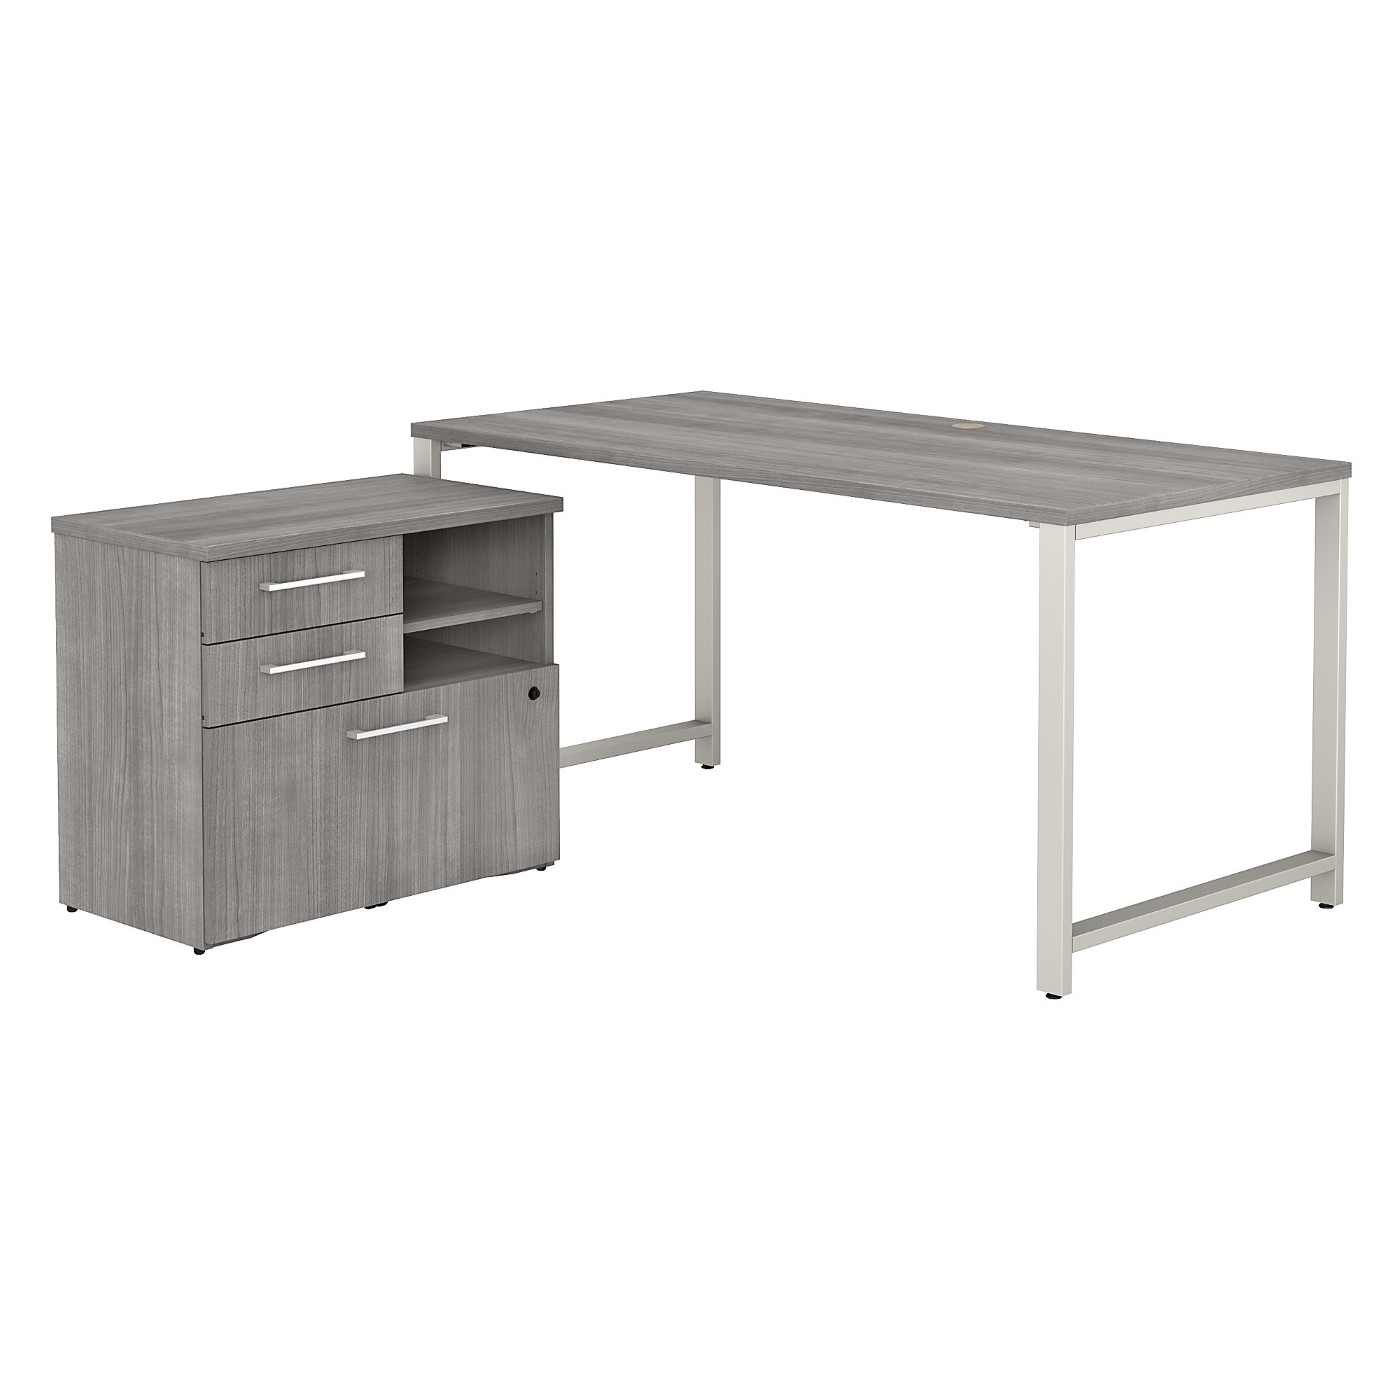 BUSH BUSINESS FURNITURE 400 SERIES 60W X 30D TABLE DESK WITH STORAGE. FREE SHIPPING SALE DEDUCT 10% MORE ENTER '10percent' IN COUPON CODE BOX WHILE CHECKING OUT.